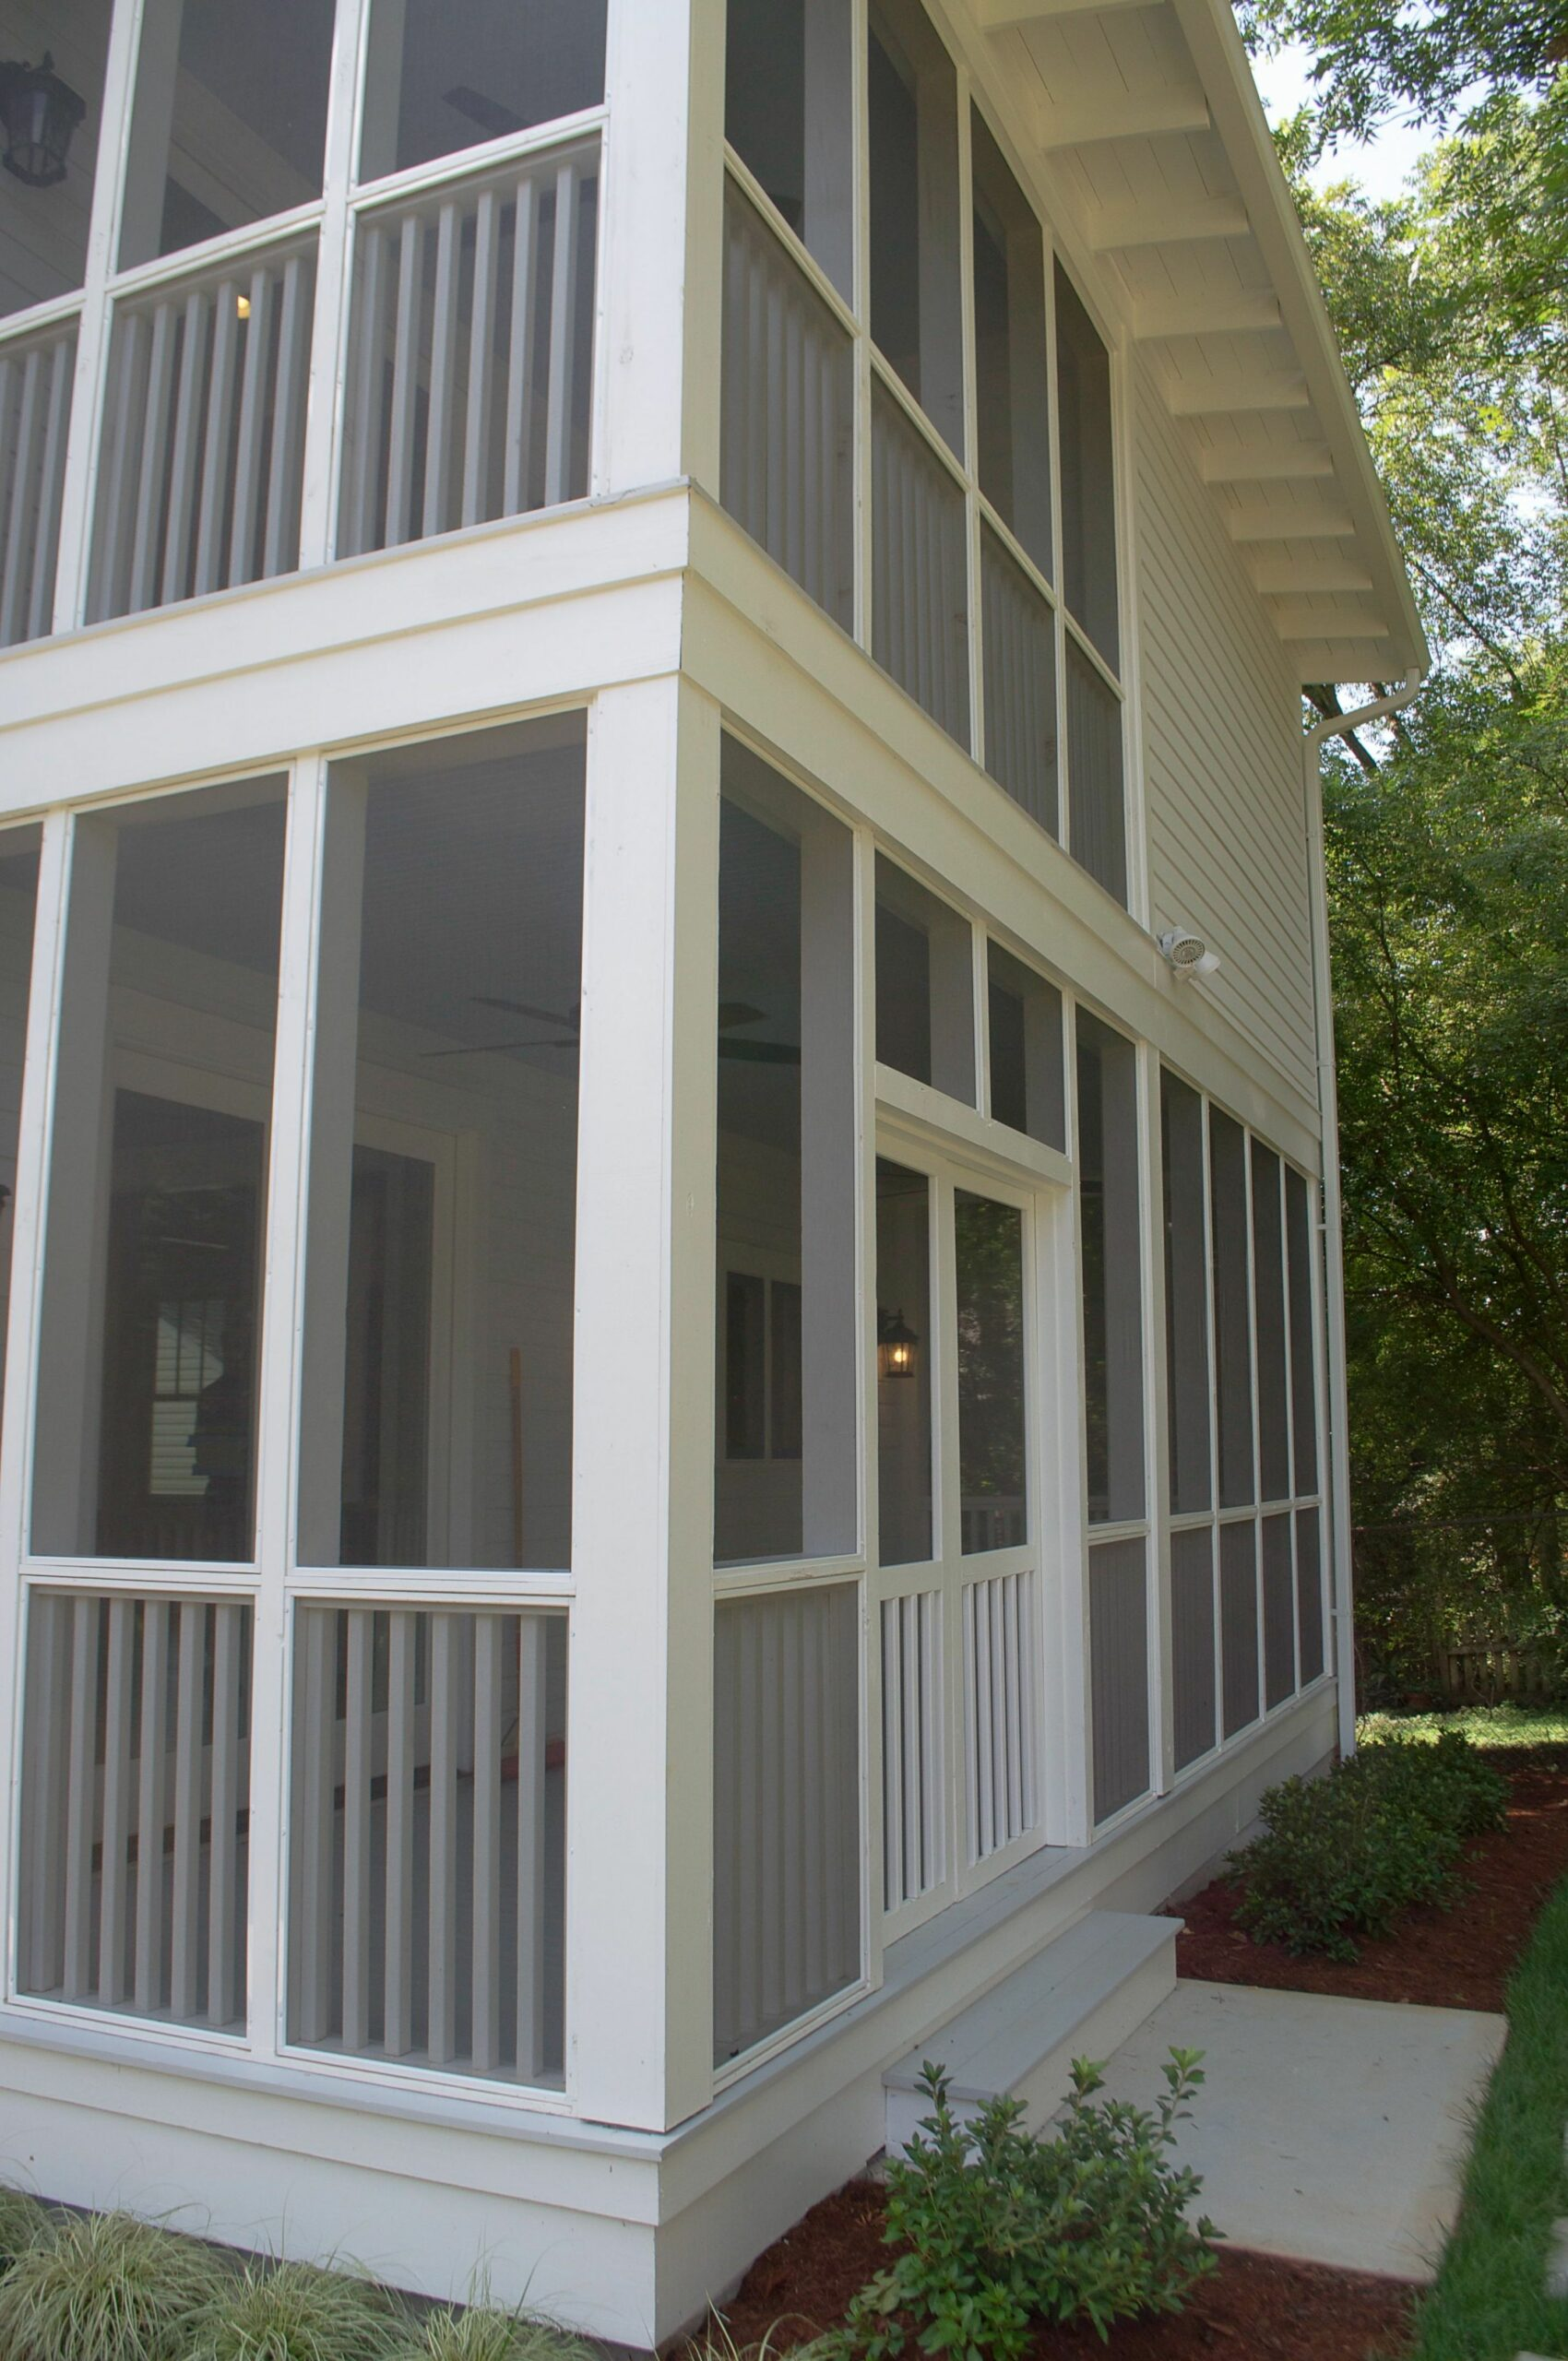 Two story screened in porch | Porch design, Screened porch designs ...